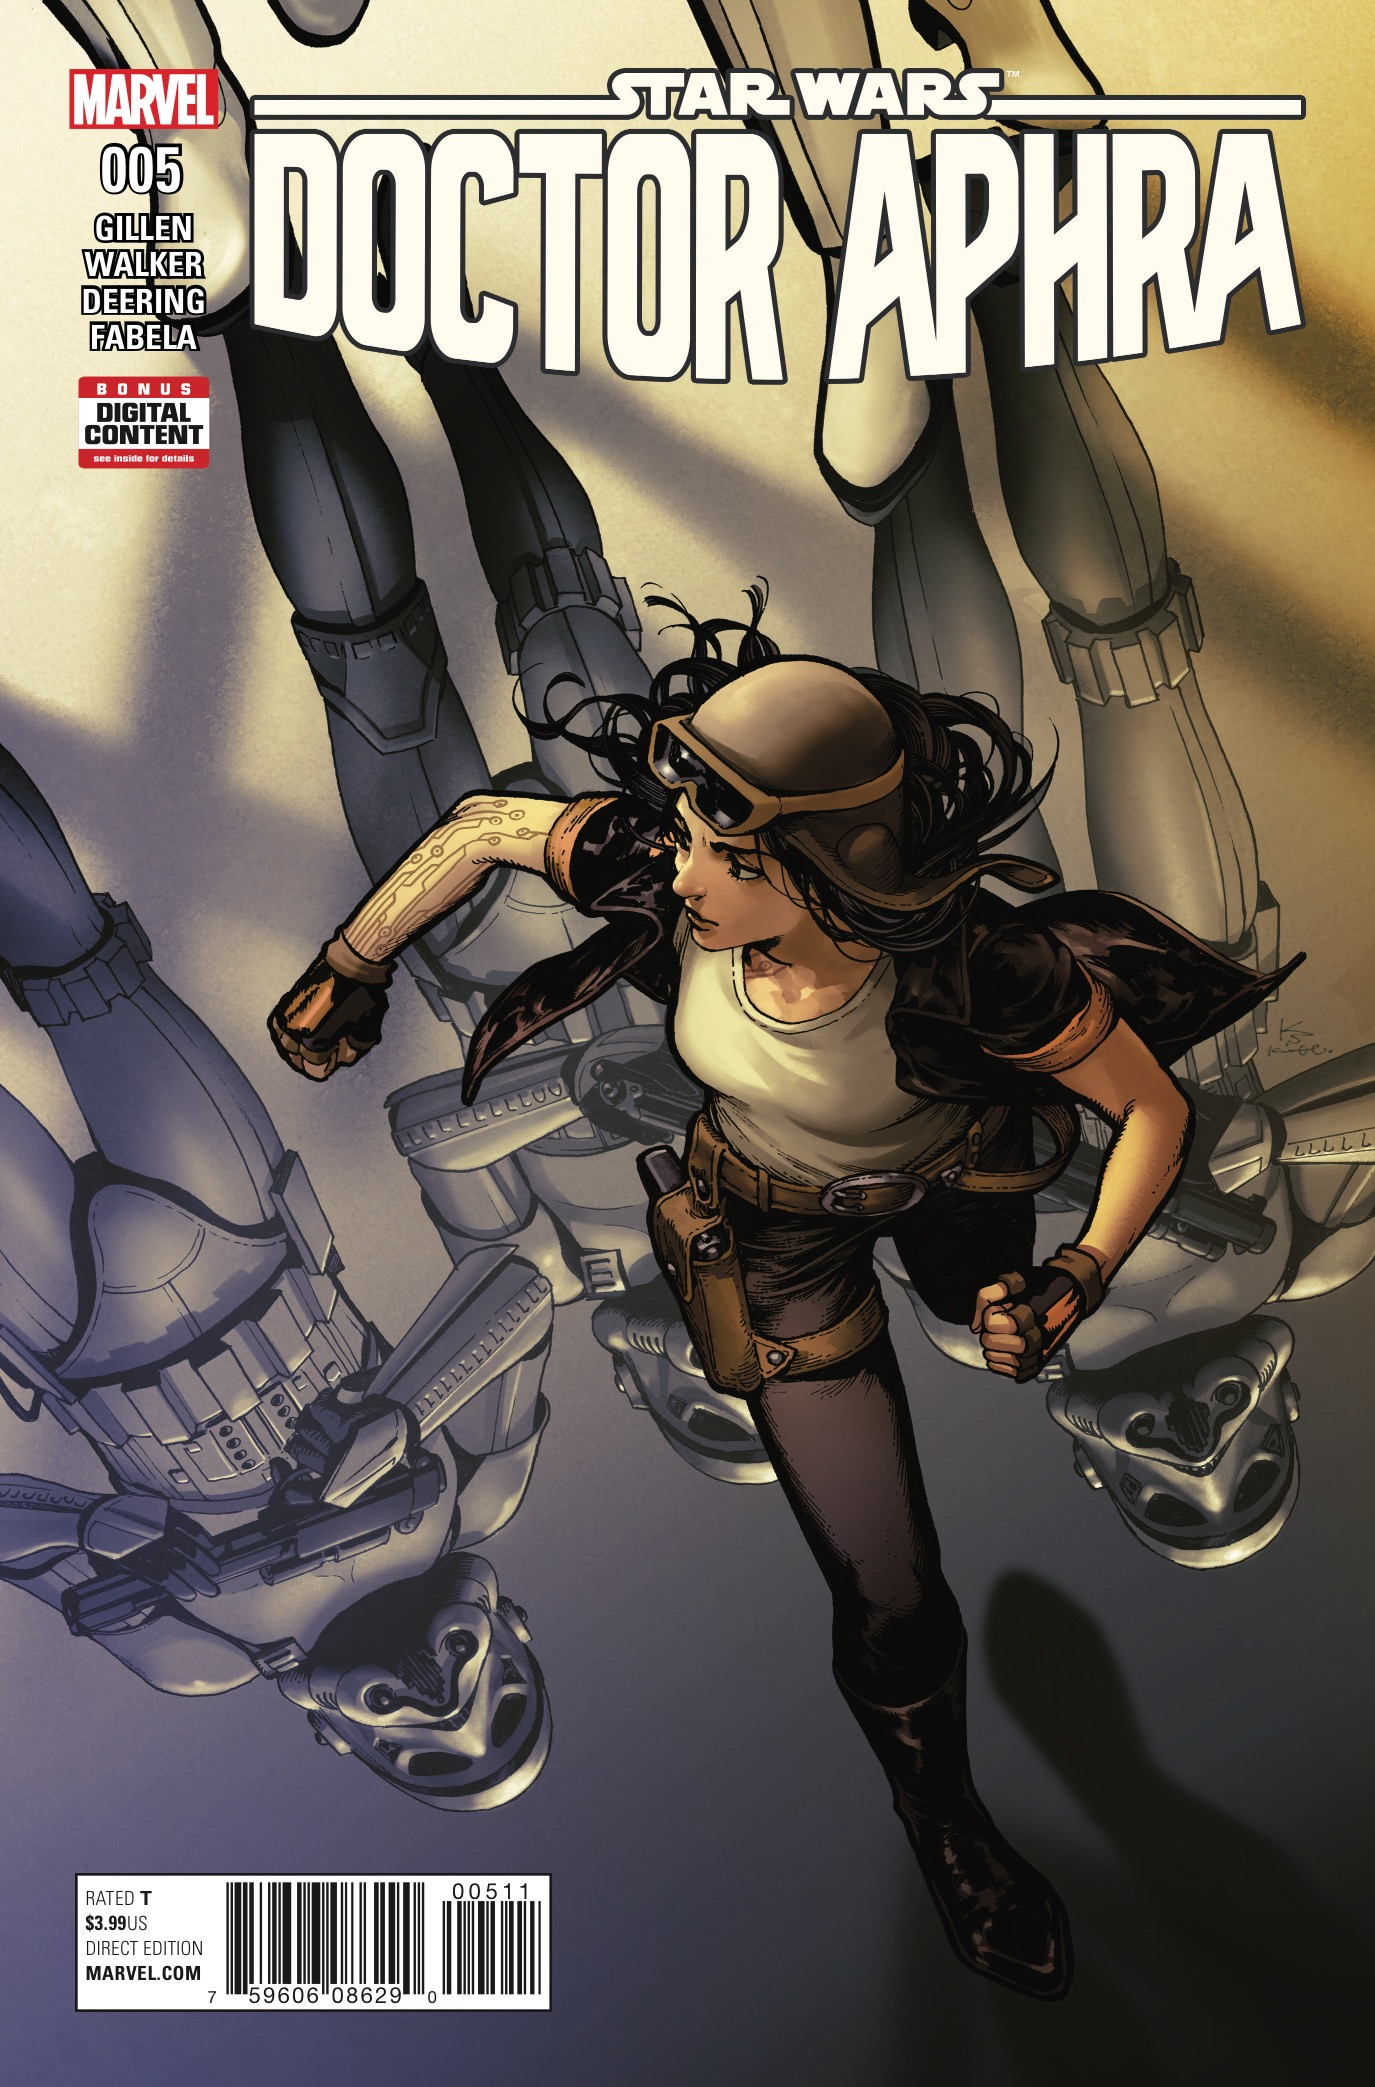 Star Wars: Doctor Aphra #5 Review